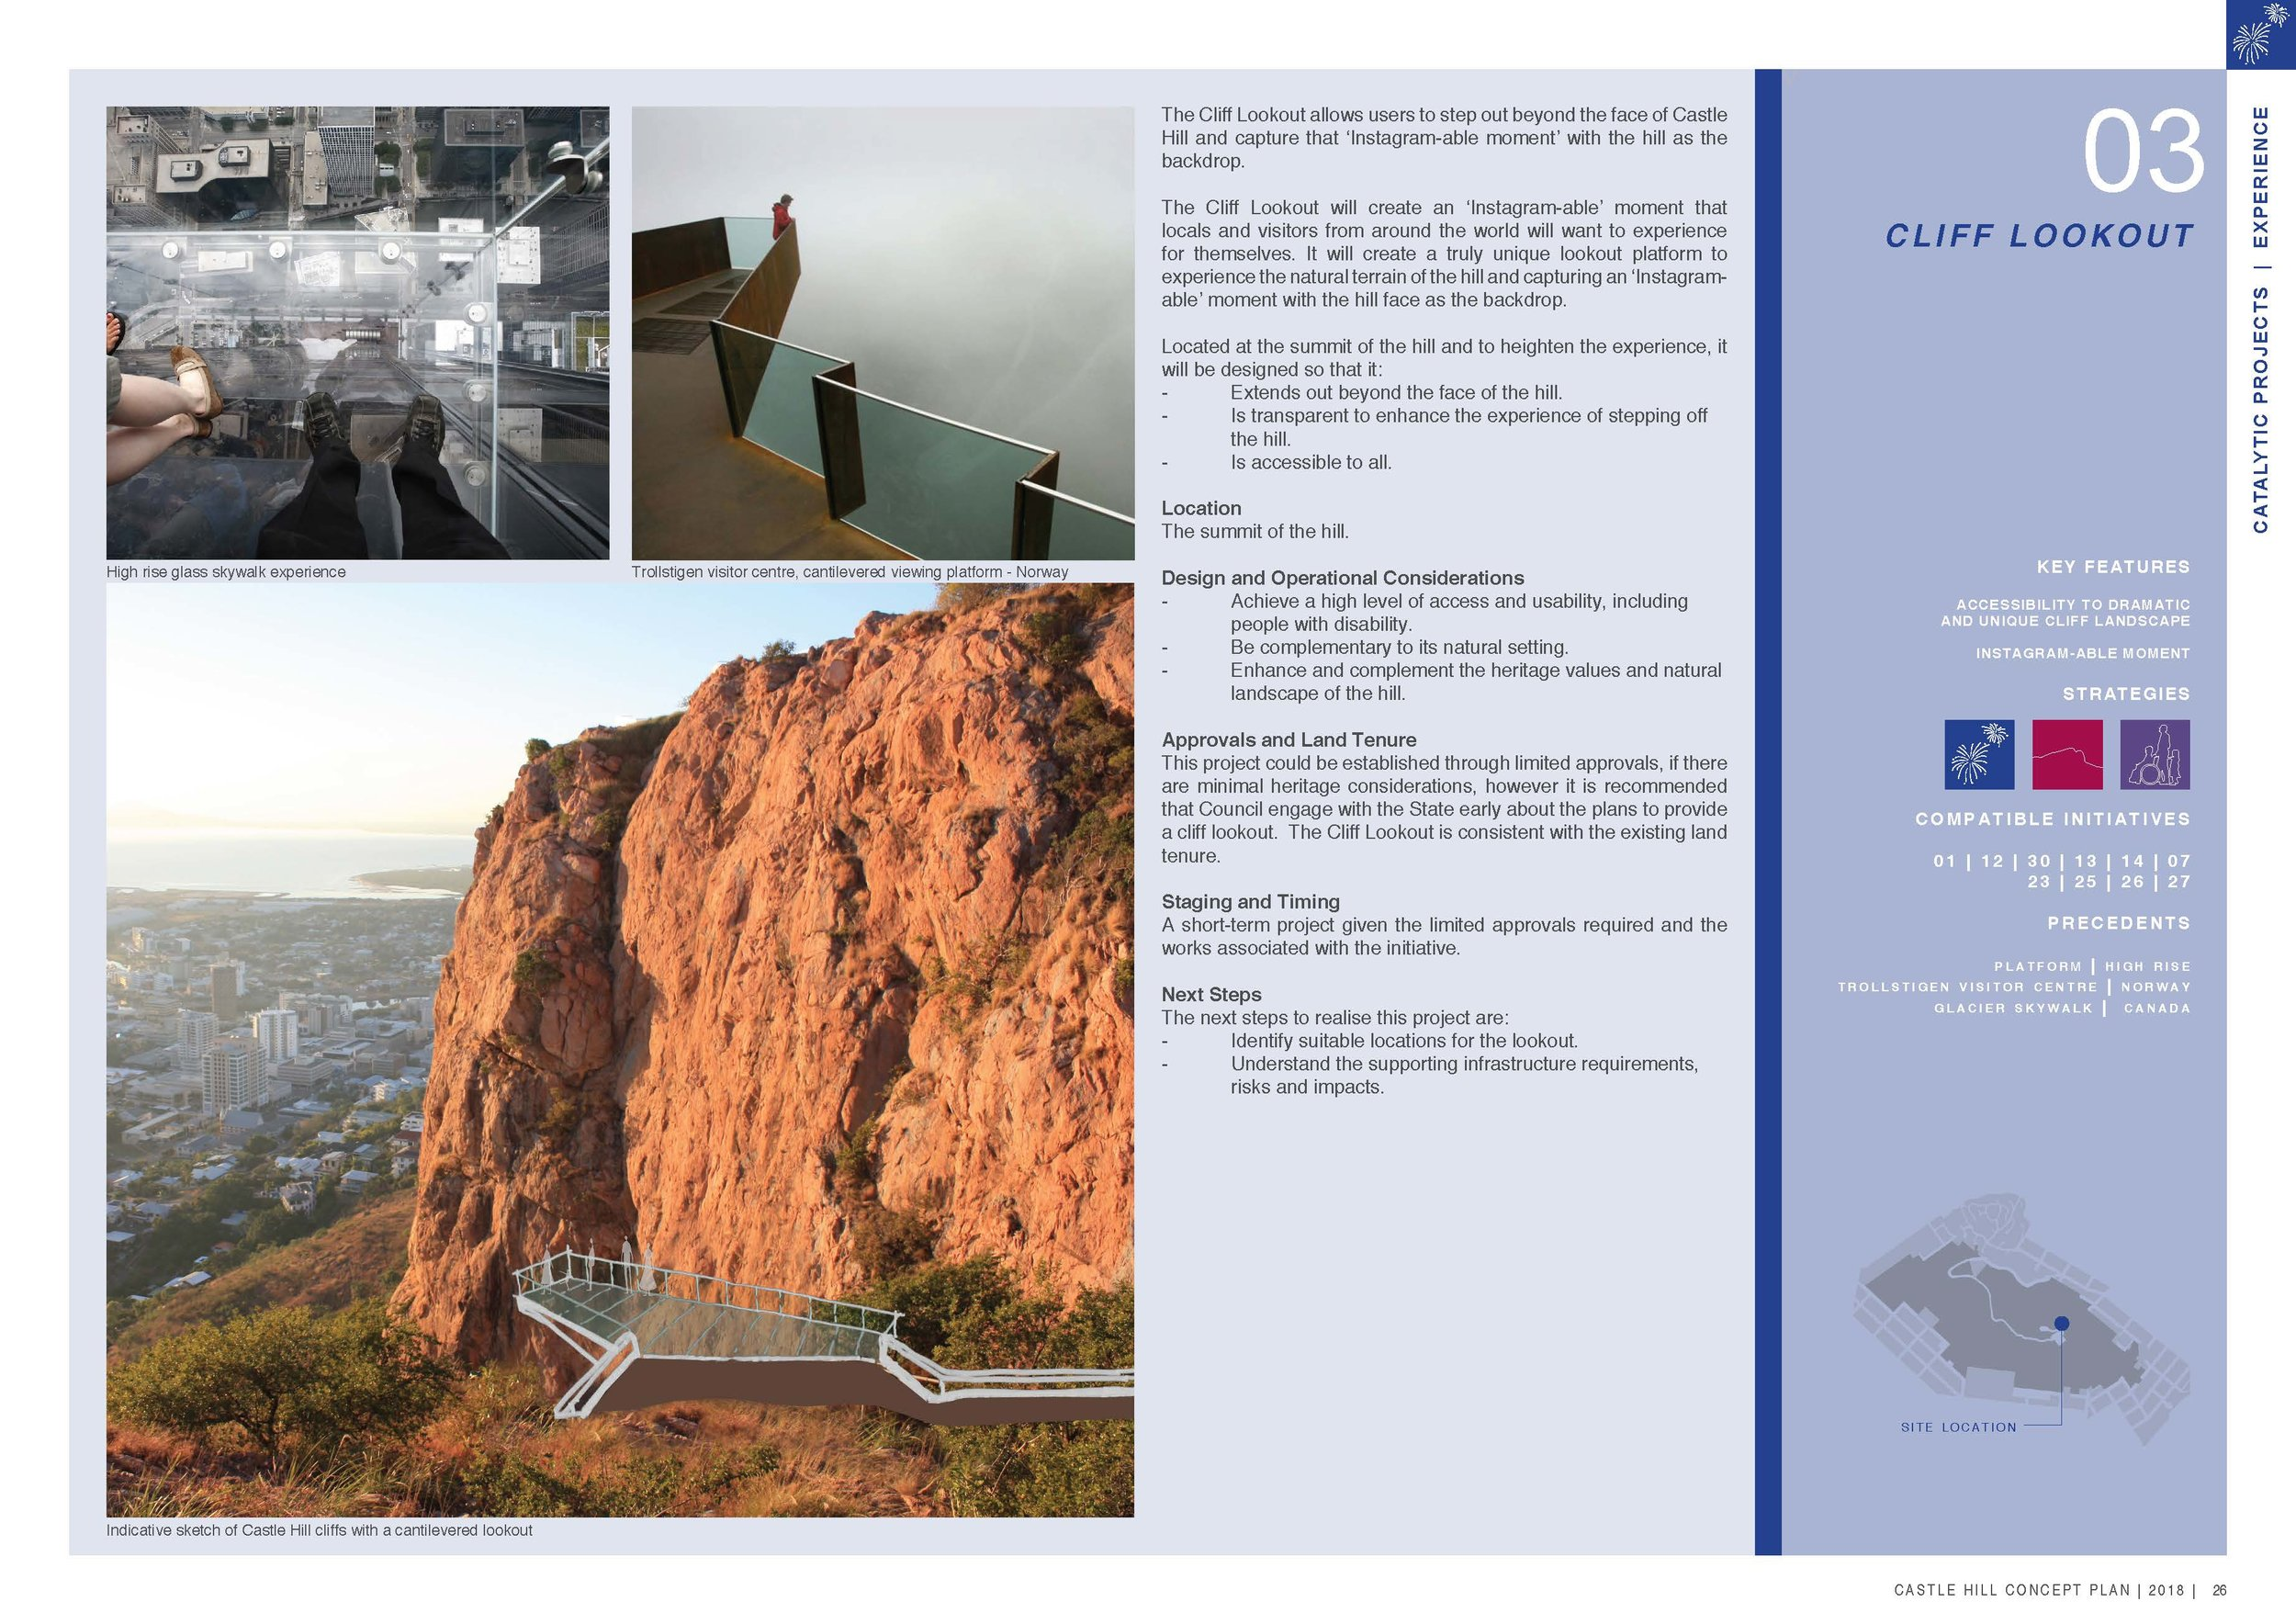 CASTLE HILL MASTER PLAN - 4 selected pages_Page_4.jpg